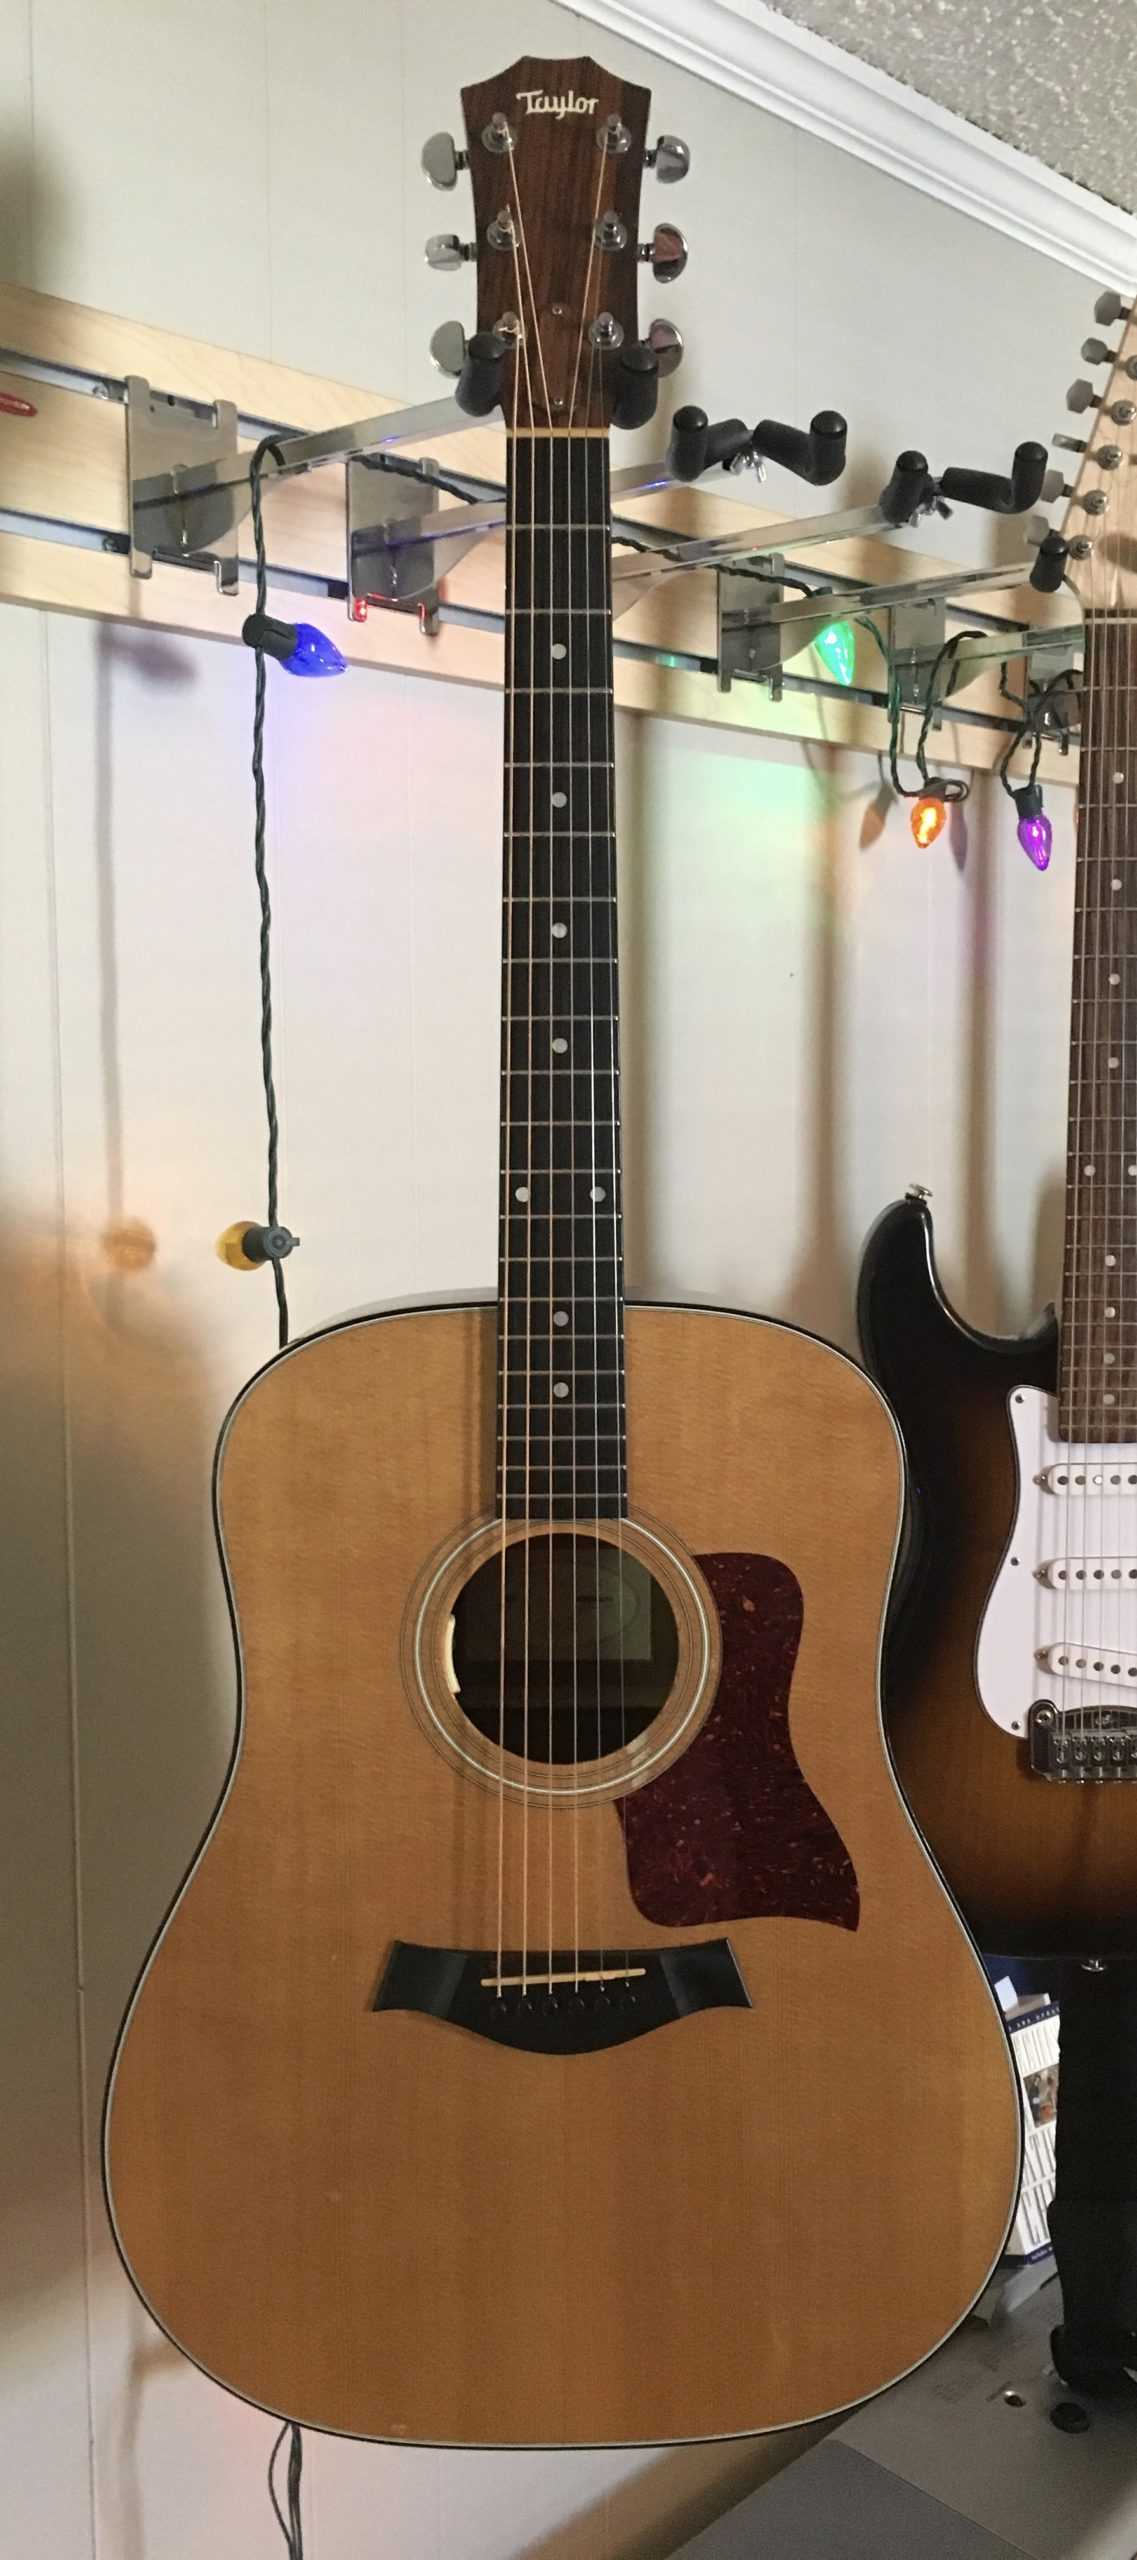 Andrew Timothy's Taylor 310